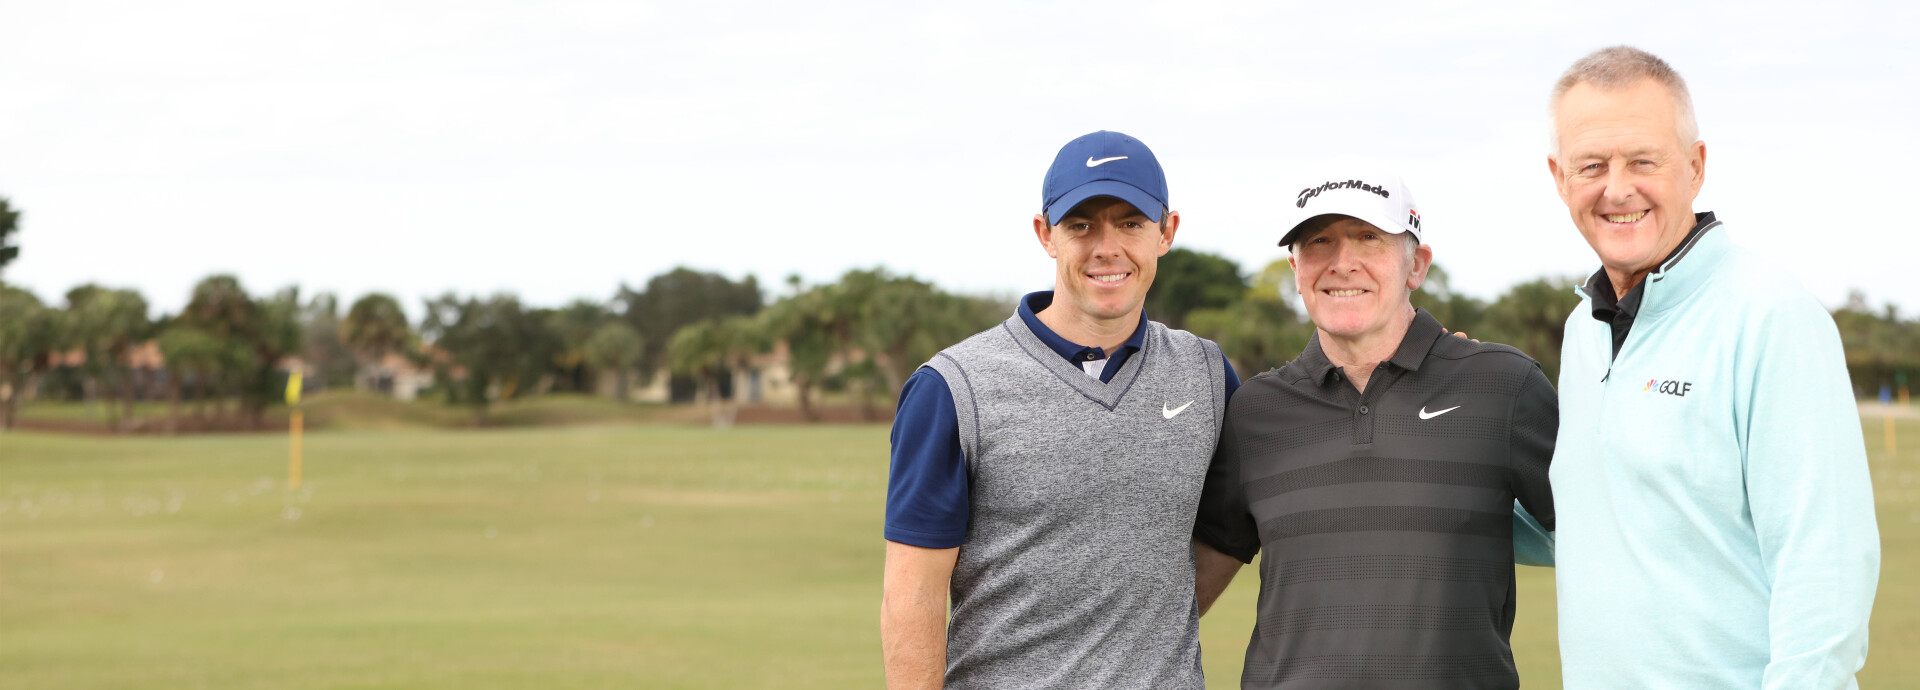 lessons_with_a_champion_golfer_rory_mcilroy_lede_leandscape_3840x1380.png